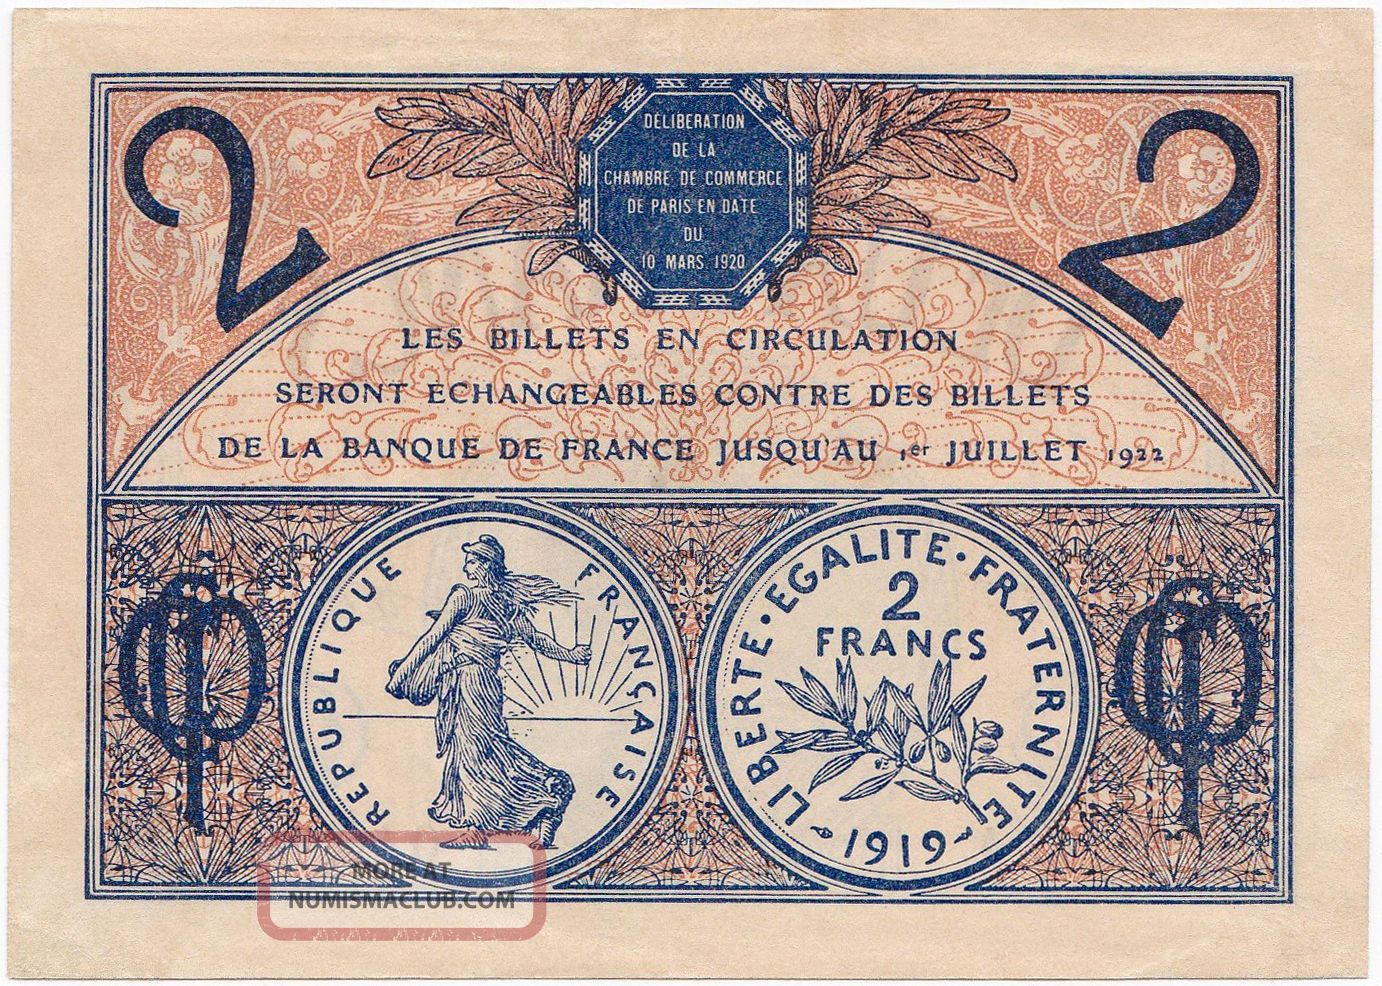 France 2 francs 1919 1922 xf chambre de commerce de paris for Chambre de commerc